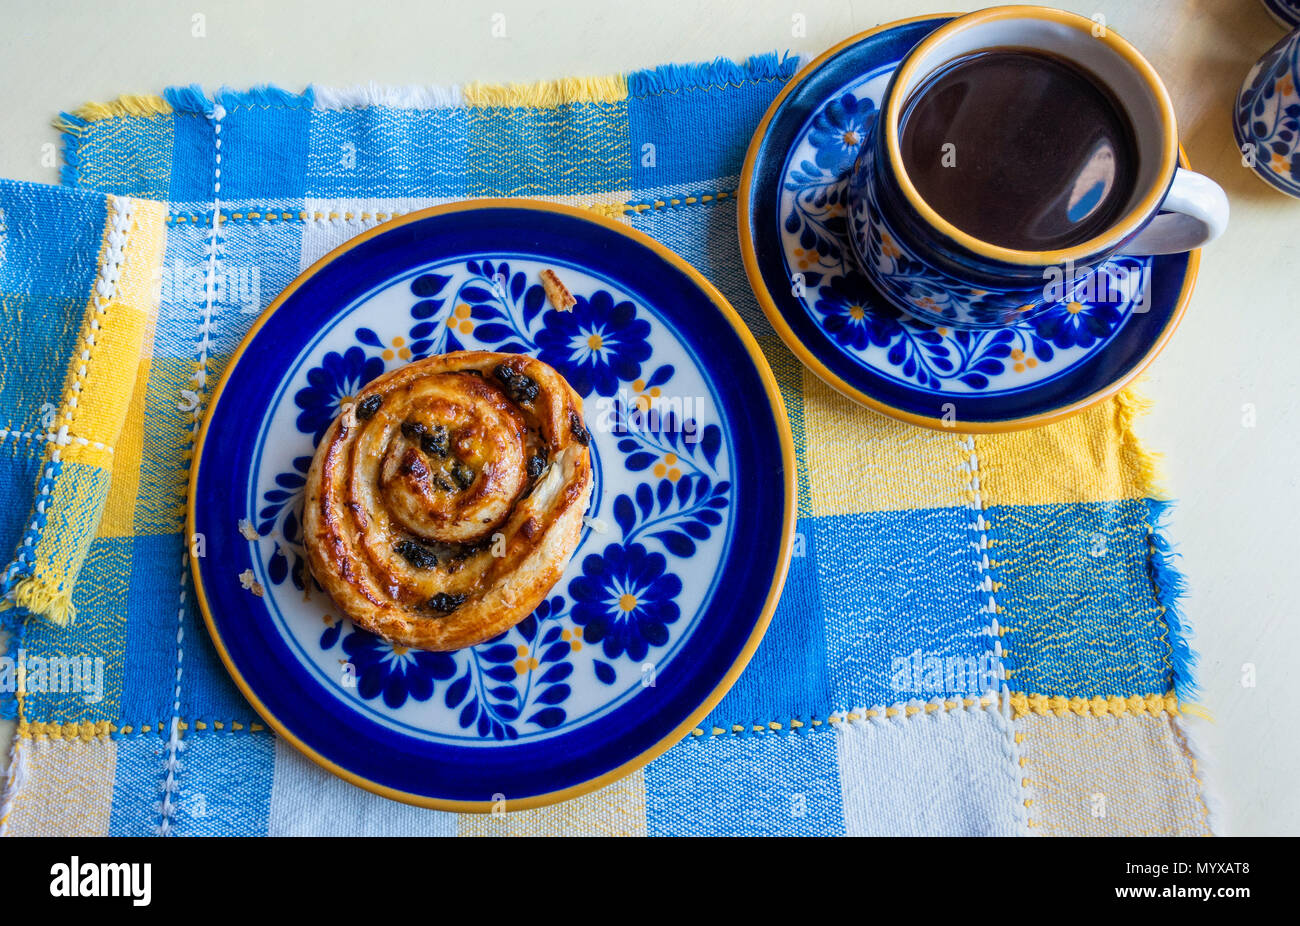 cinnamon-raisin-danish-pastry-and-black-